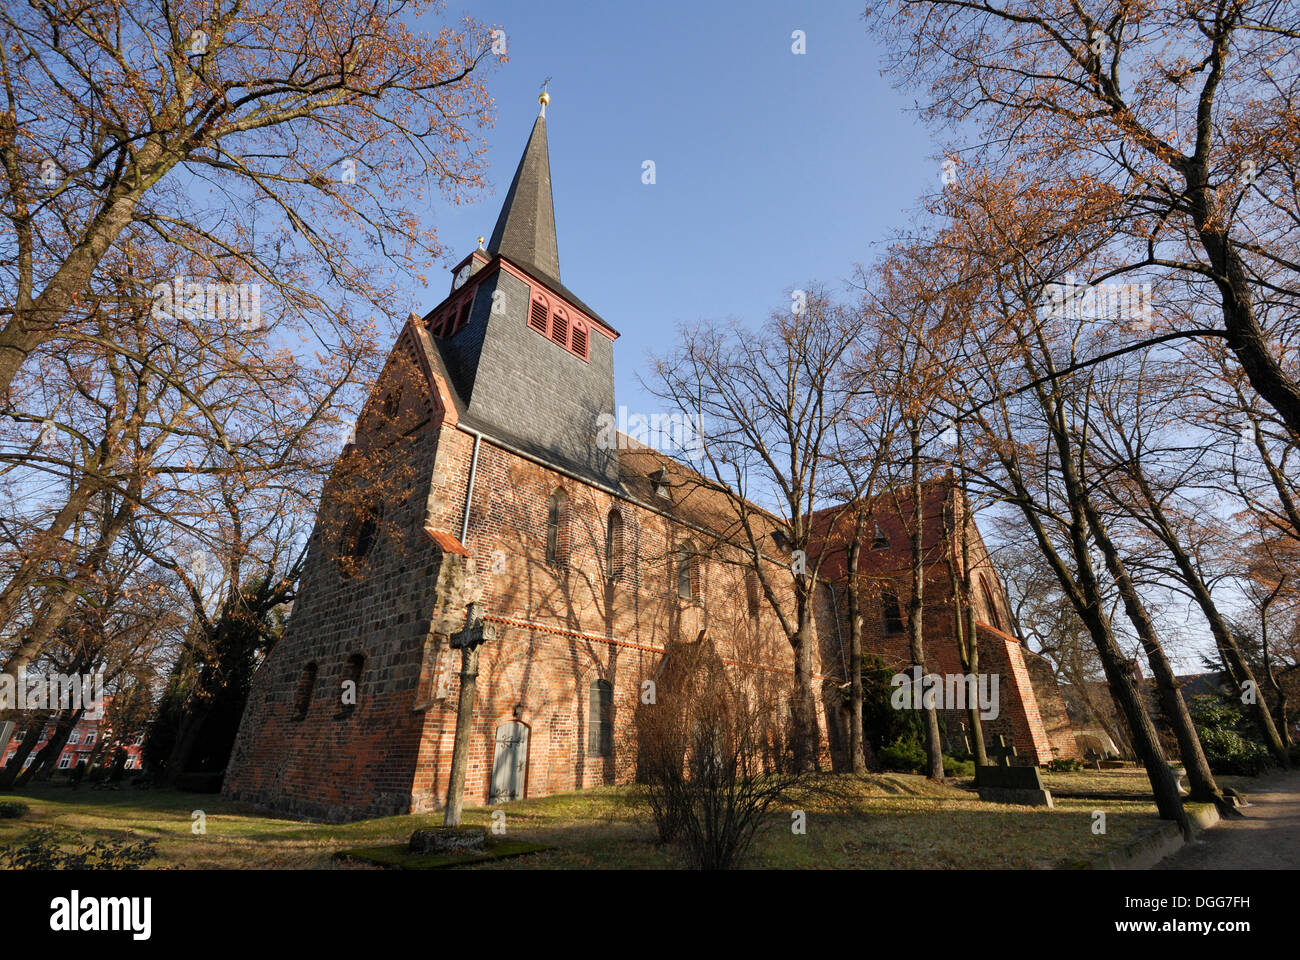 Liebfrauenkirche, Church of Our Lady, in Jueterbog, Teltow-Flaeming district, Brandenburg - Stock Image